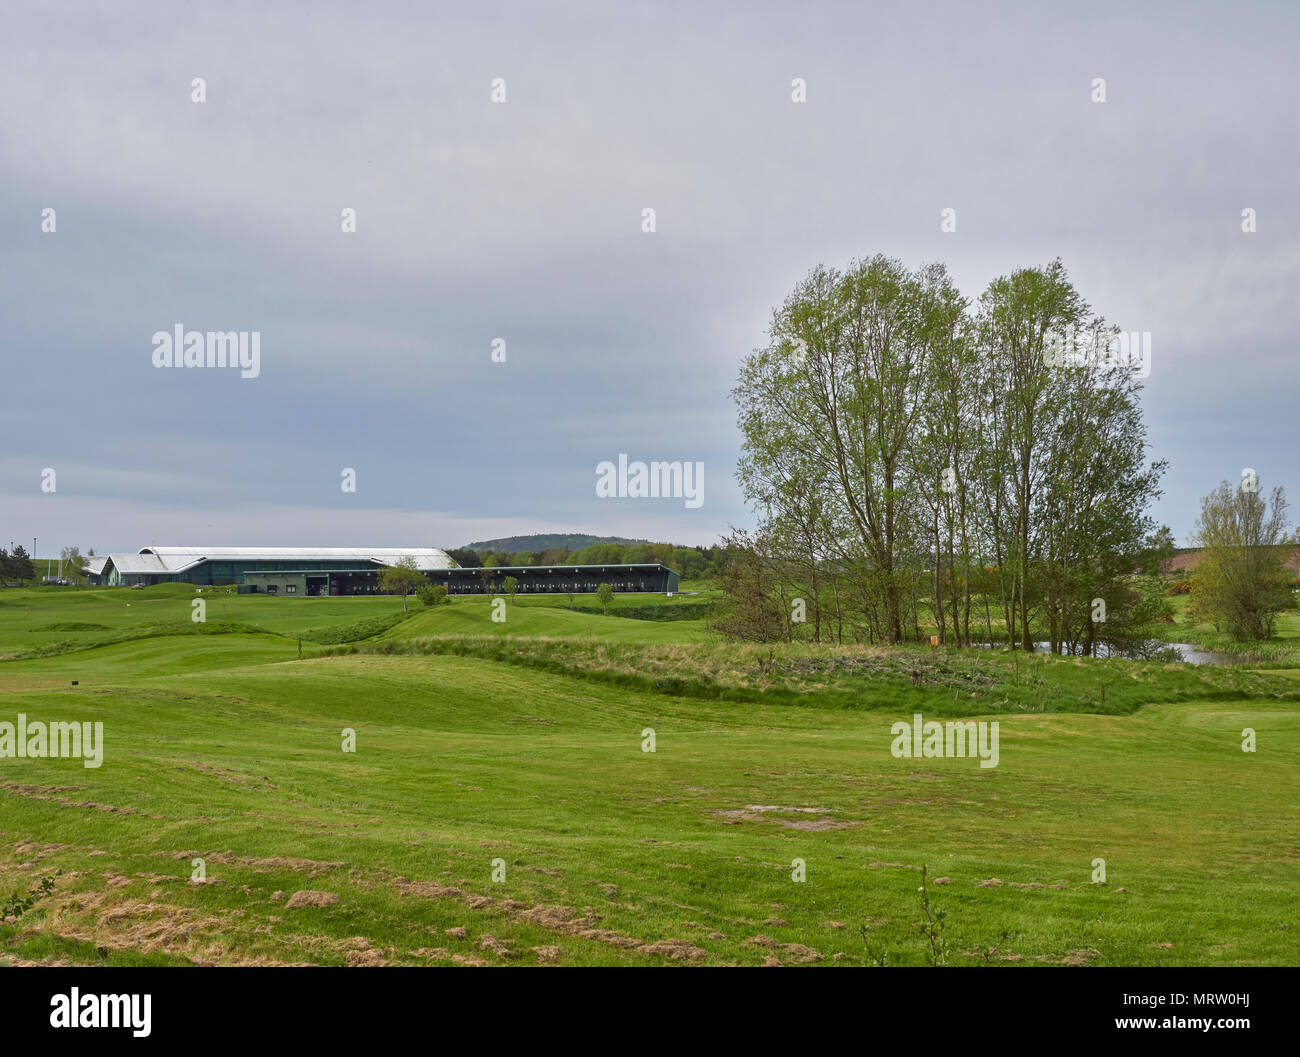 The Drumoig Golf Centre close to Dundee, which has a Driving range as well as a Par 3 9 Hole golf Course, Fife in Scotland. - Stock Image